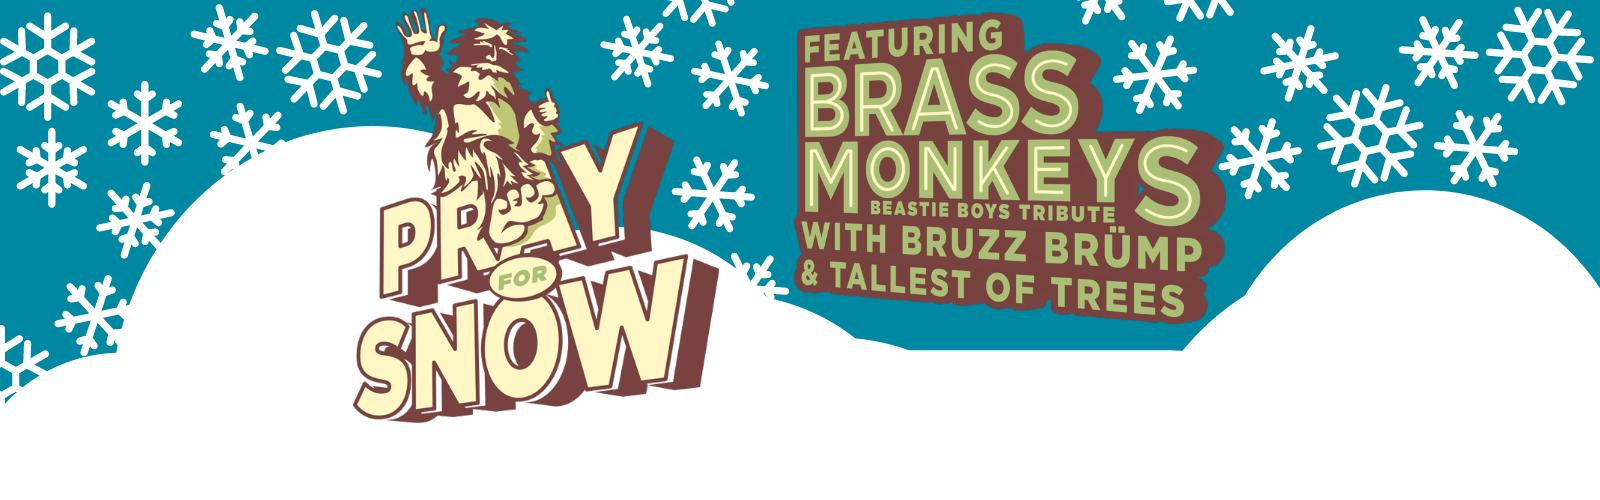 Pray for Snow Logo with the bands who will be playing the concert